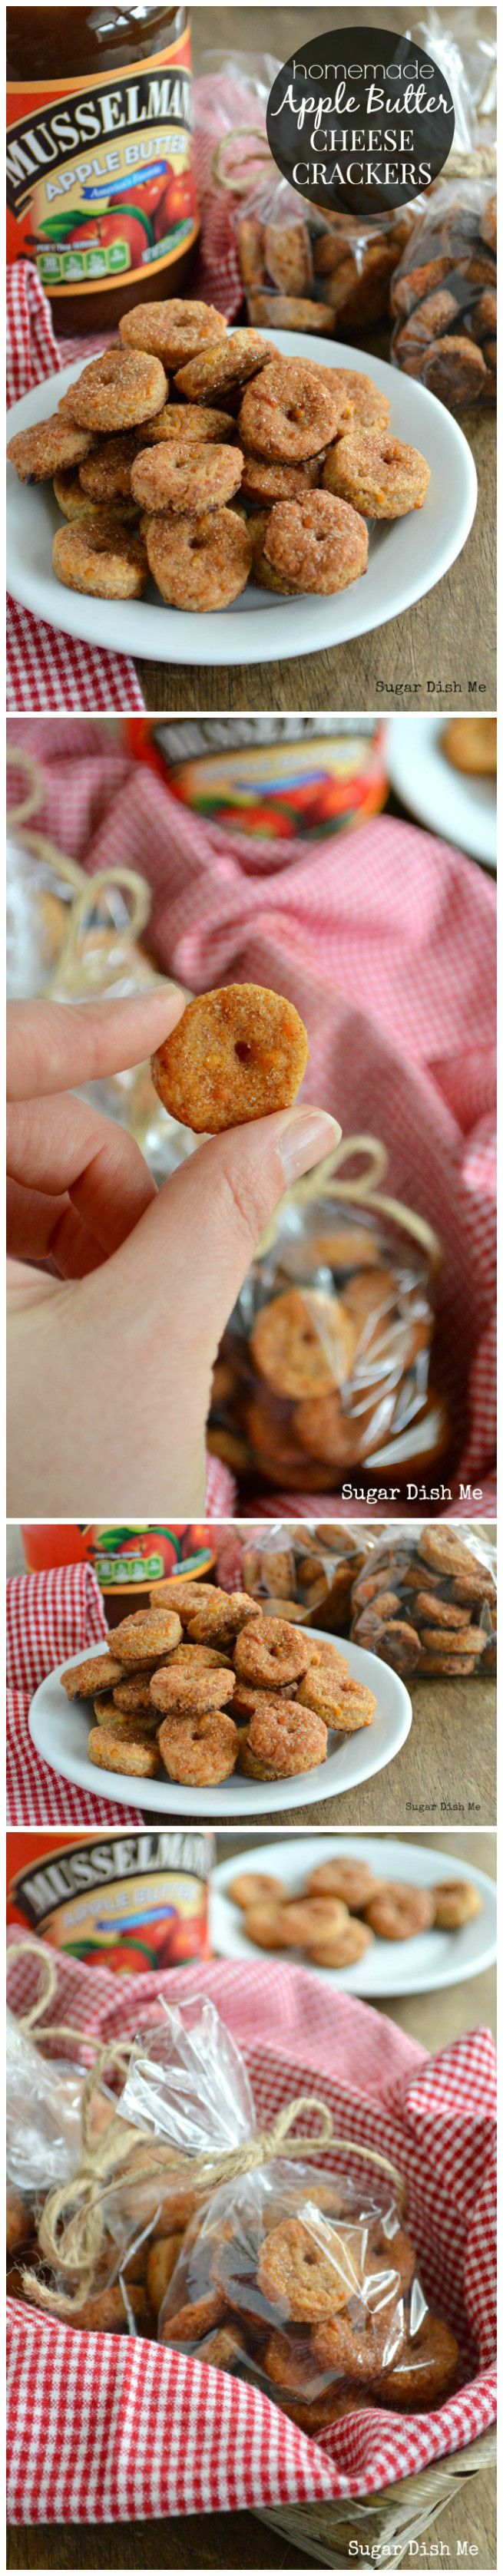 Homemade Apple Butter Cheese Crackers - Sugar Dish Me